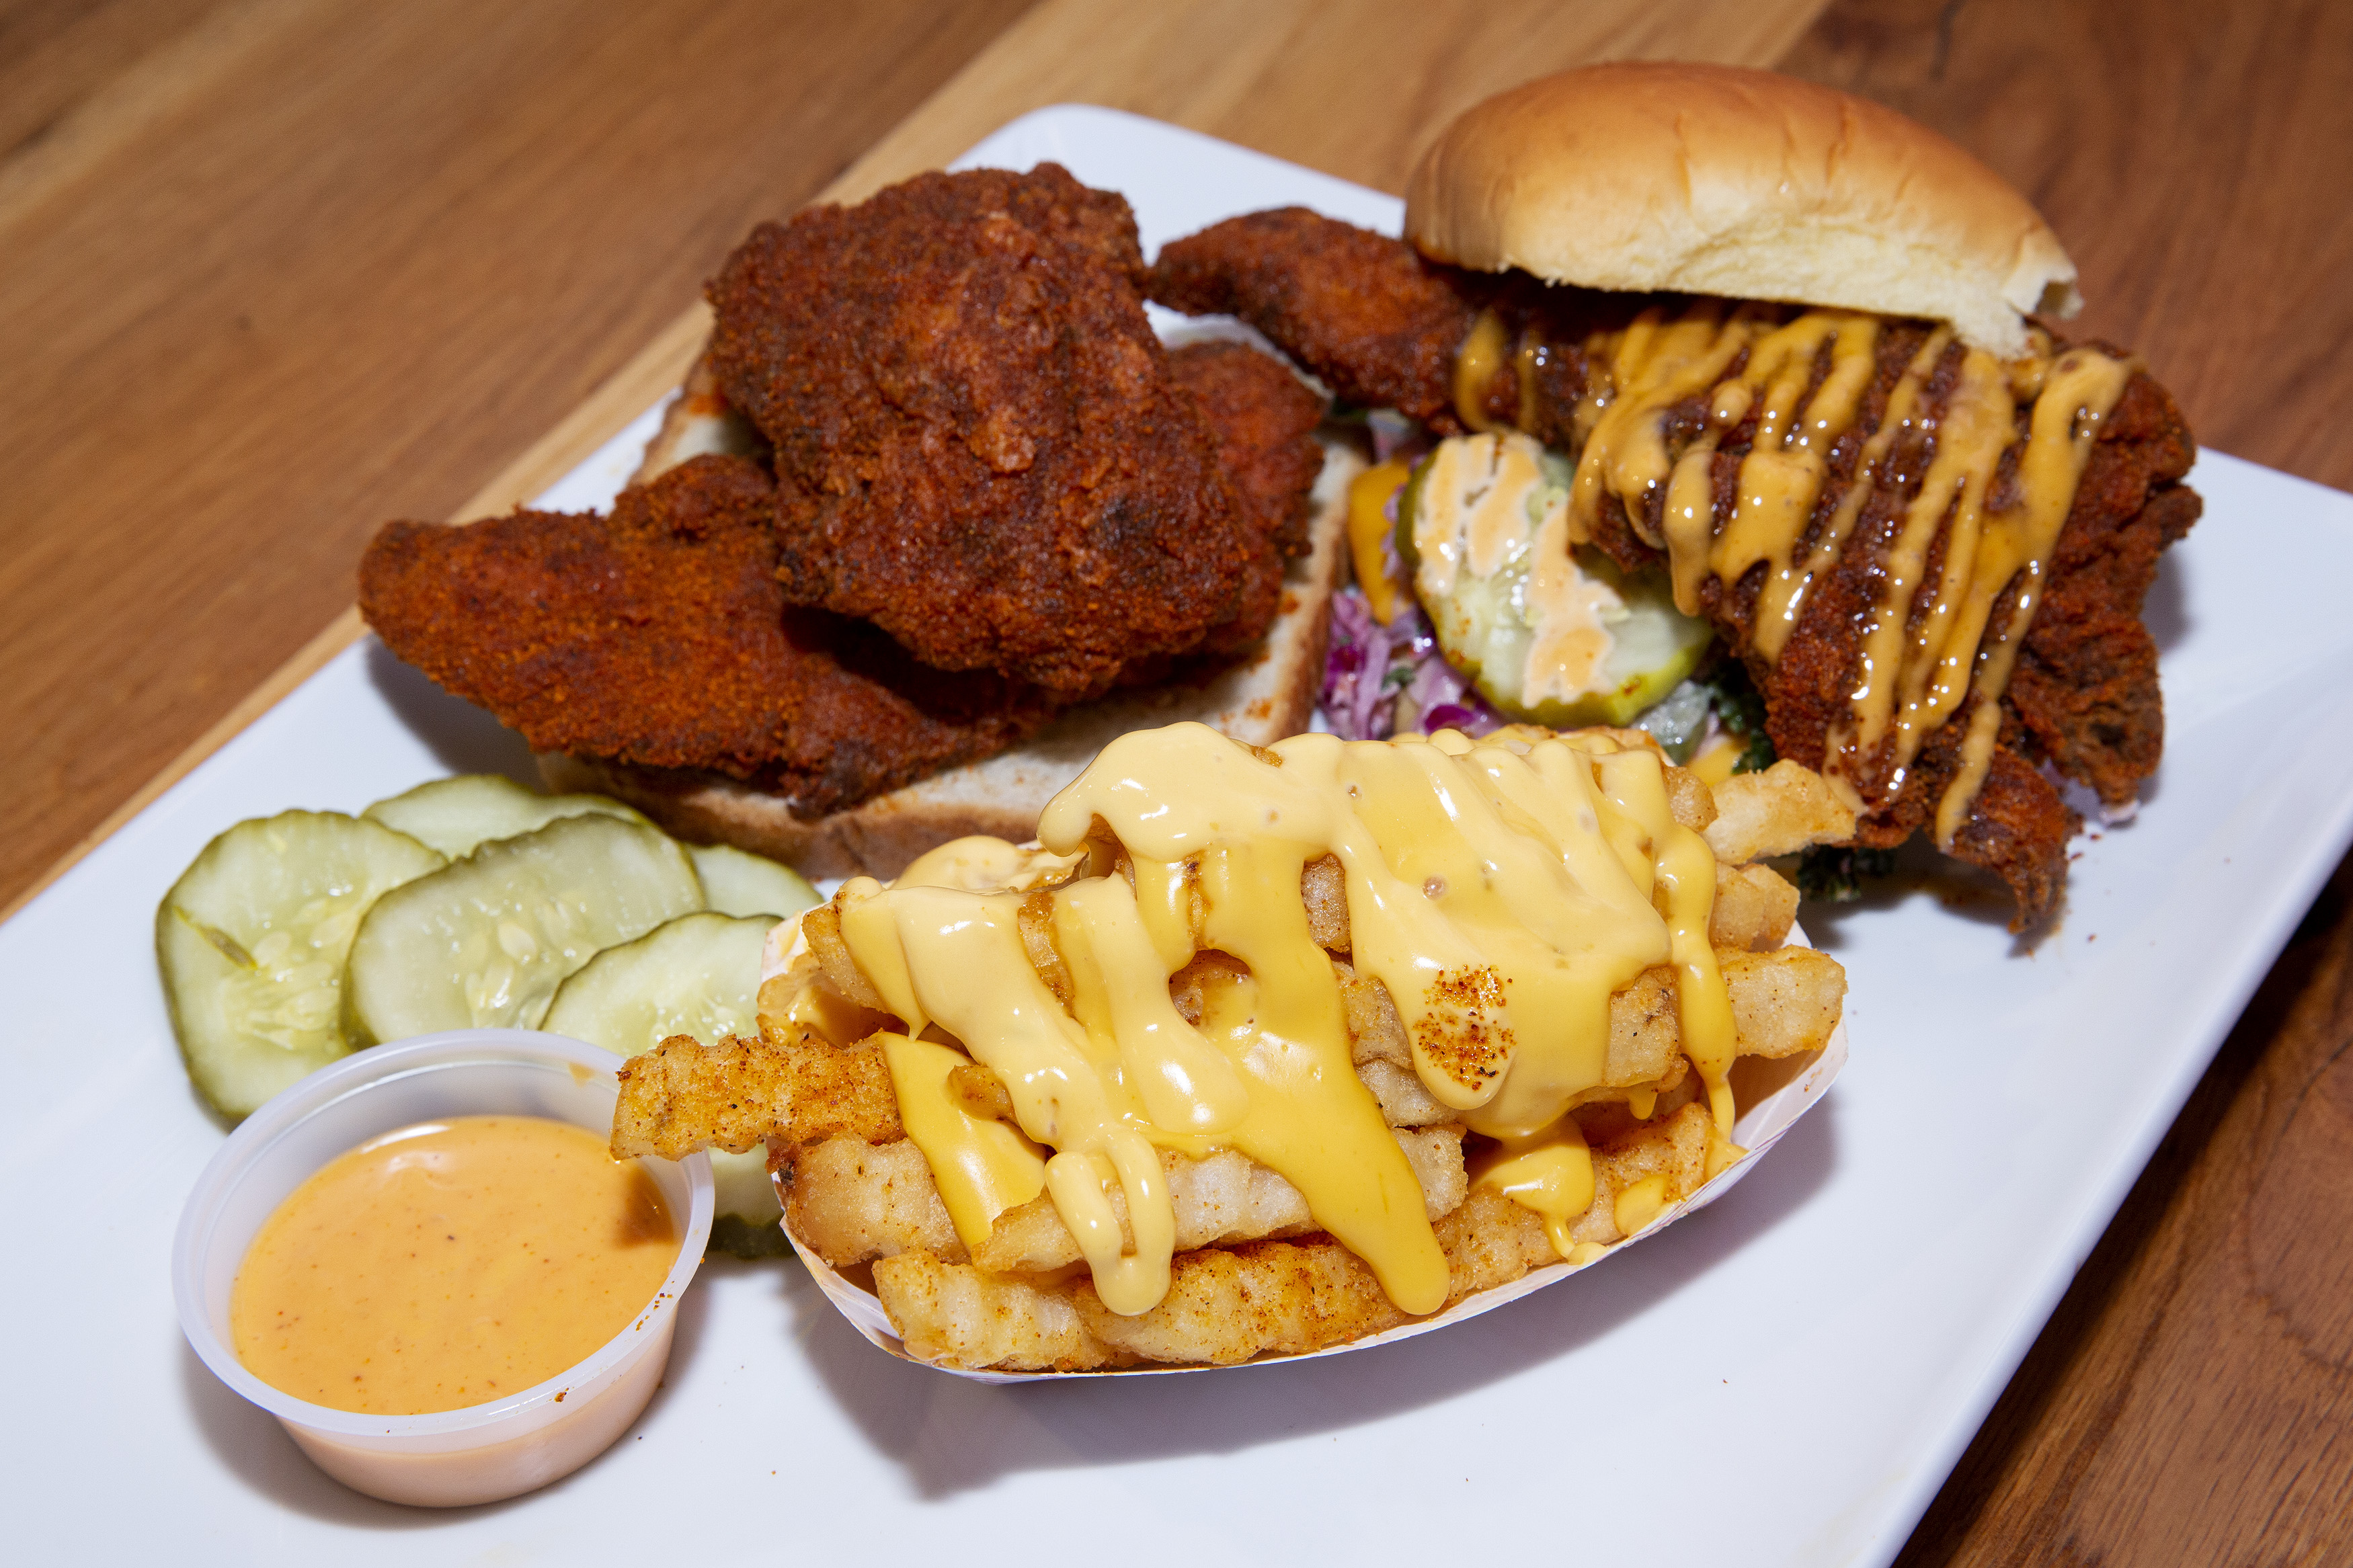 A white plate of two hot chicken sandwiches and a serving of crinkle-cut fries drizzled with cheese sauce.